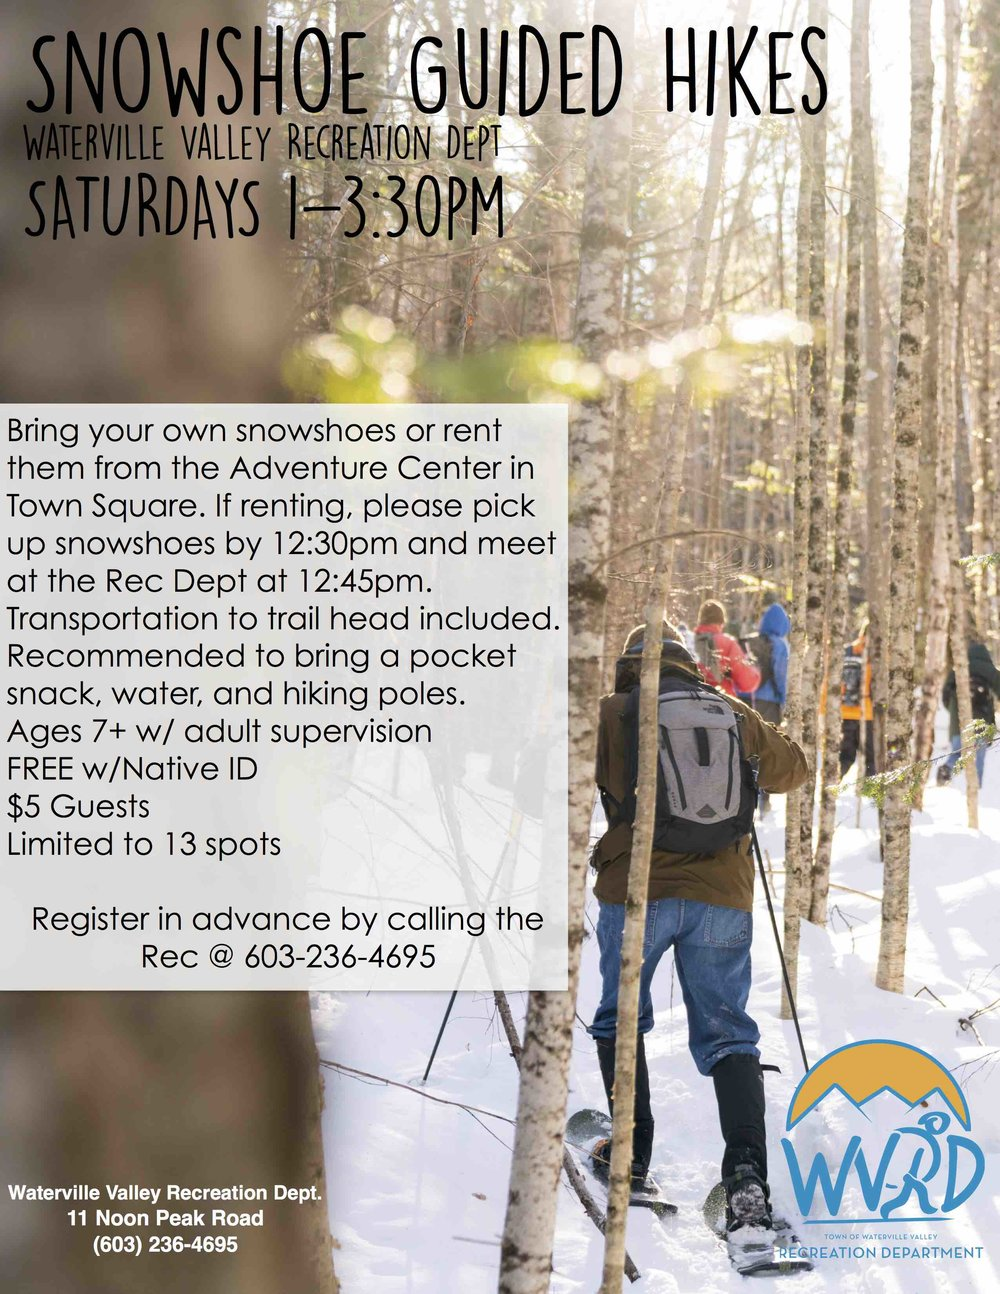 With the 7+ inches of snow Waterville Valley just got this weekend's snowshoe hike will be a winter wonderland! If you're interested call to sign up now! (603) 236-4695